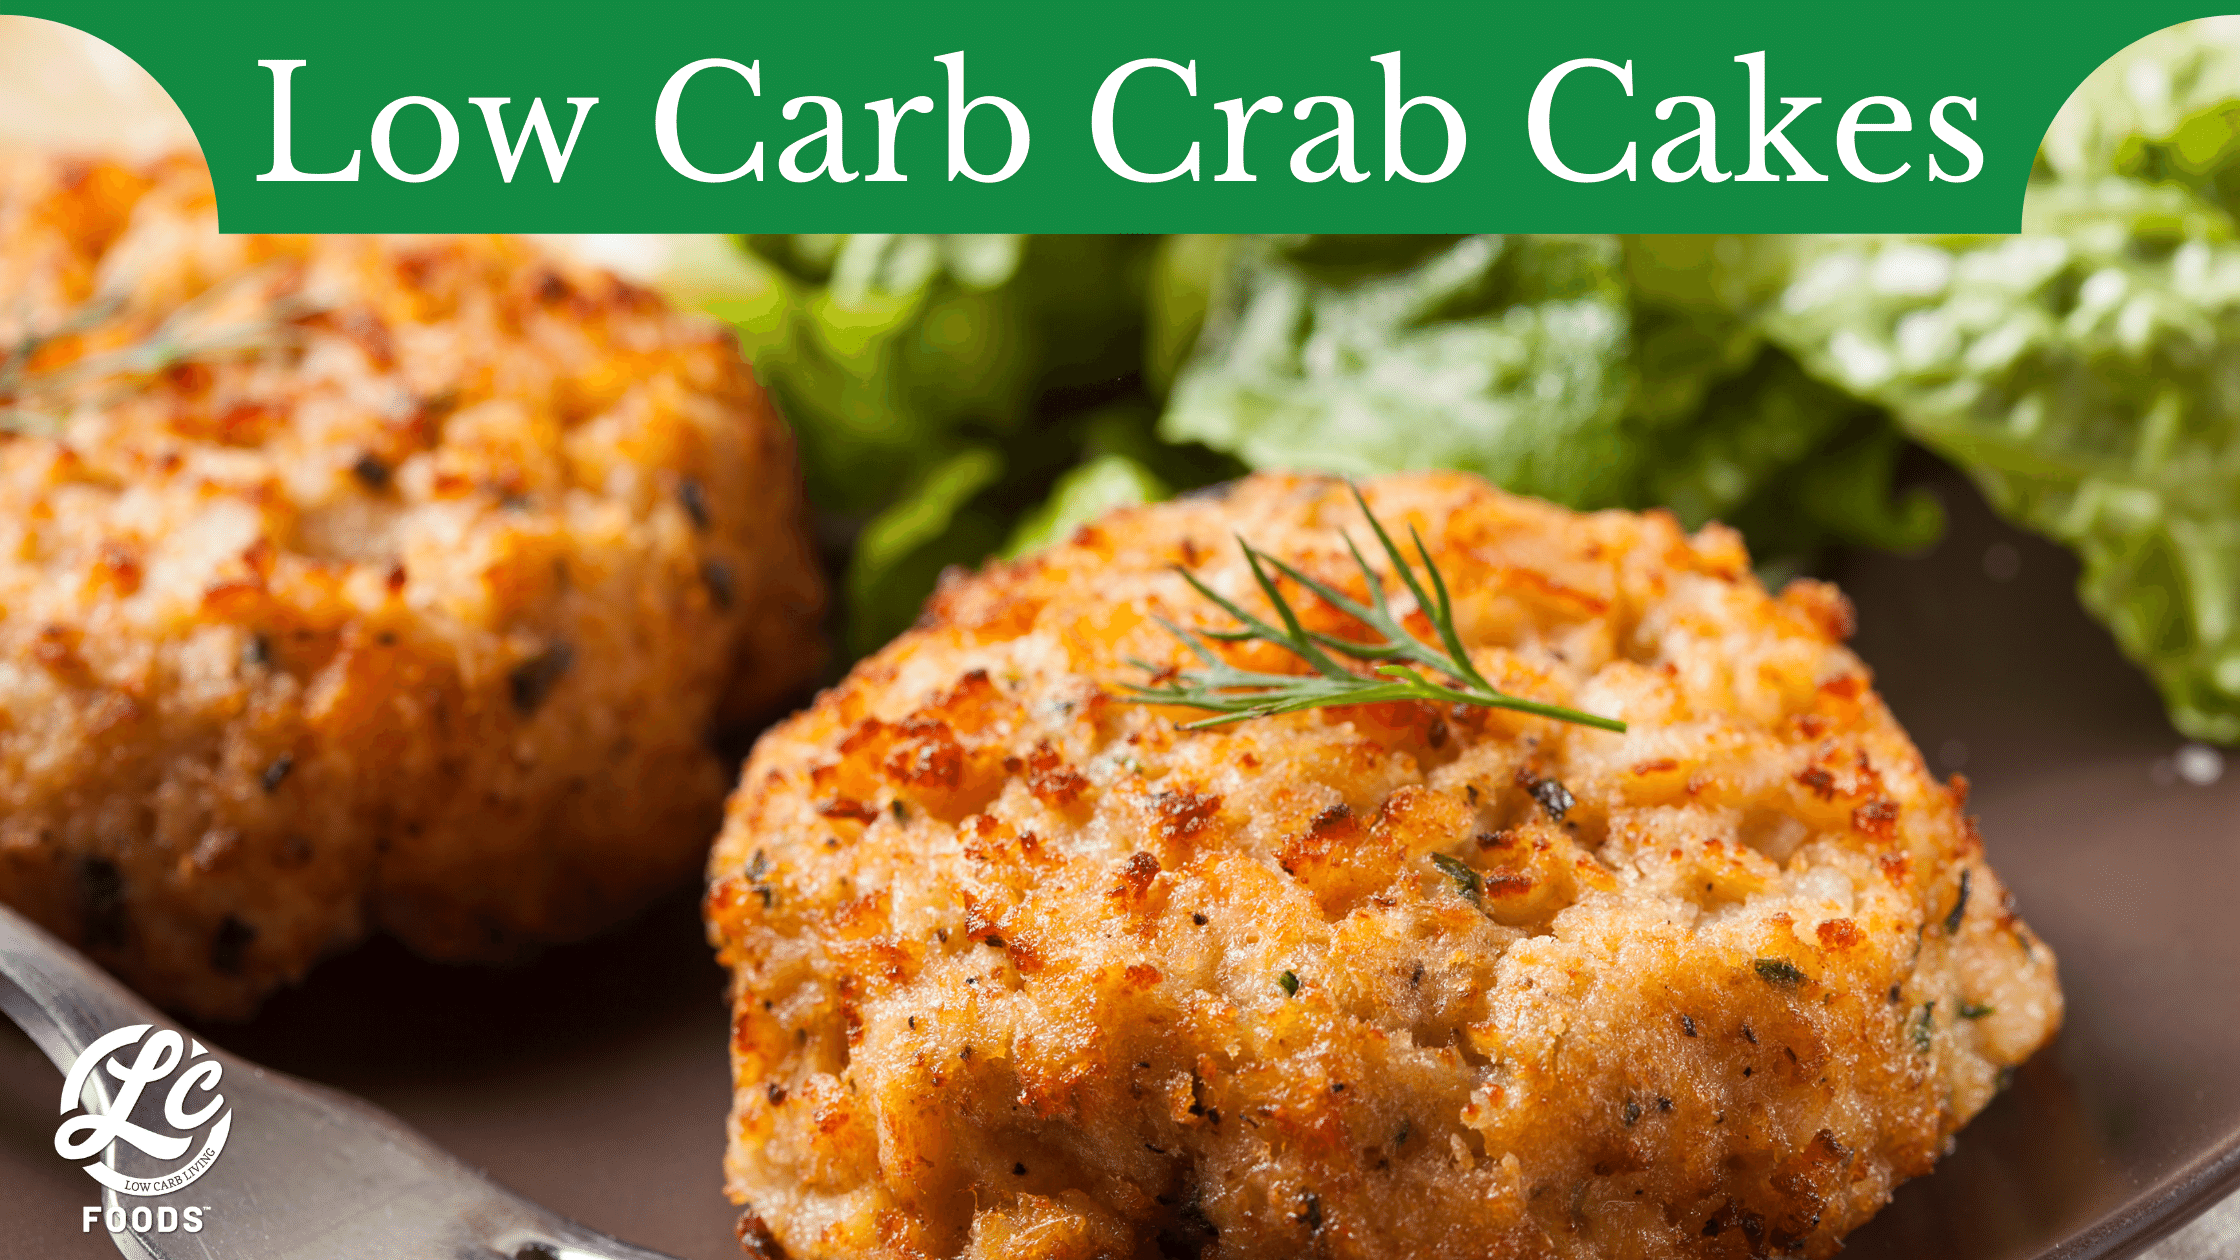 Thumbnail for Low Carb Crab Cakes